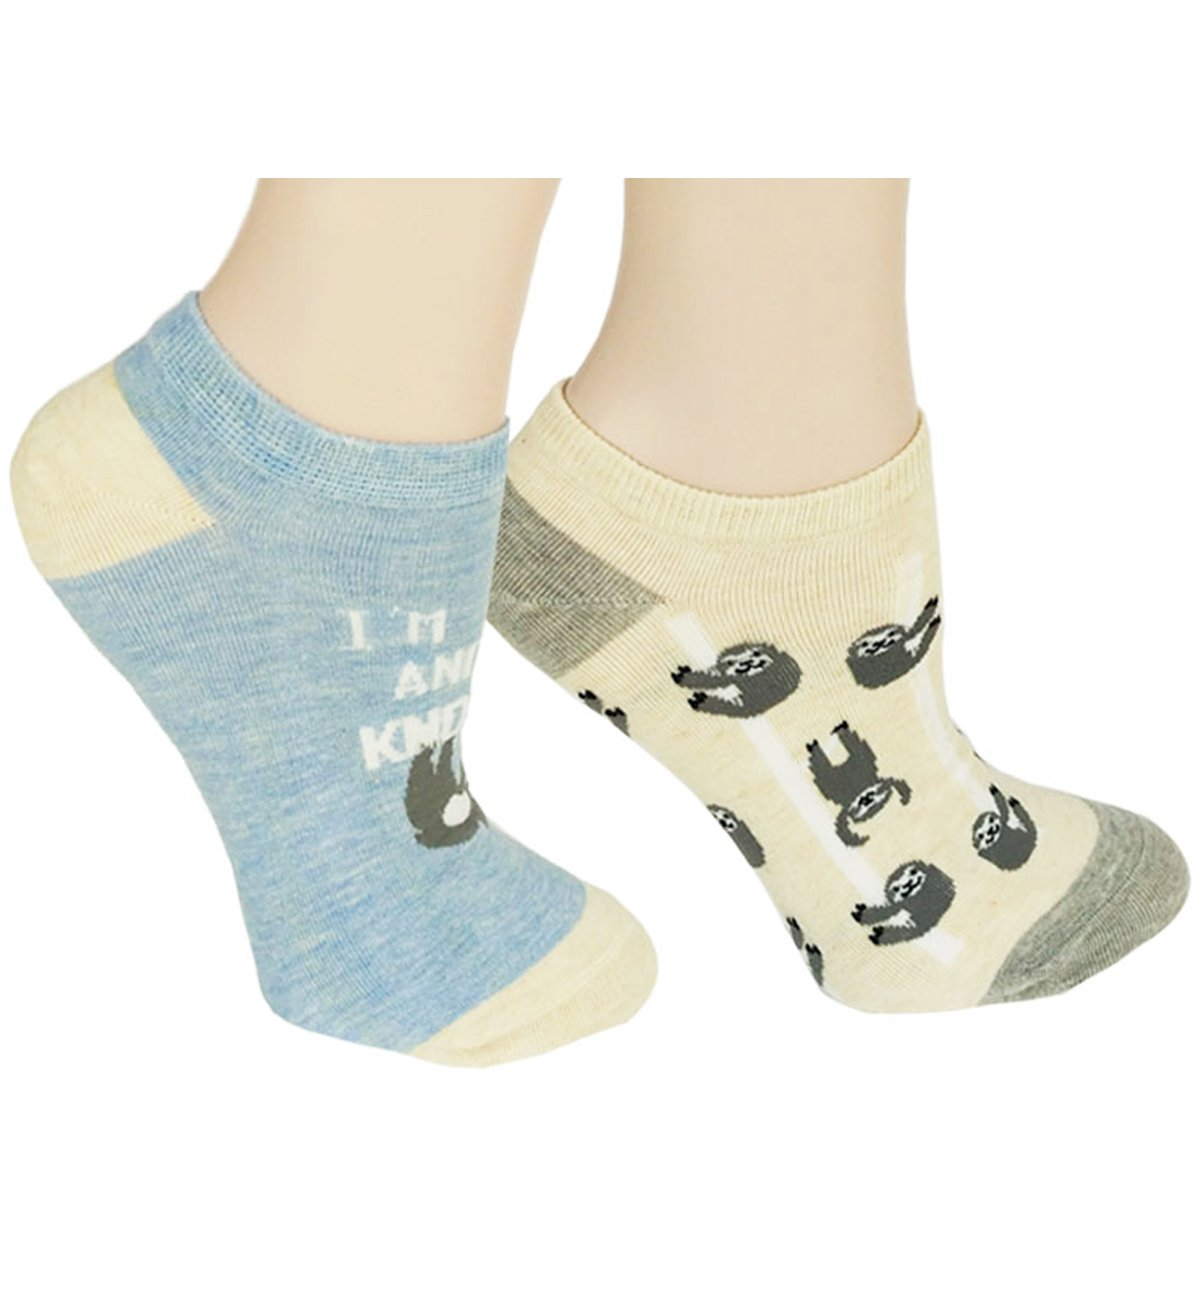 Zmart Cute Ankle Socks Funny Sloth No Show Socks for Women Girl Animal Thin Low Cut Socks